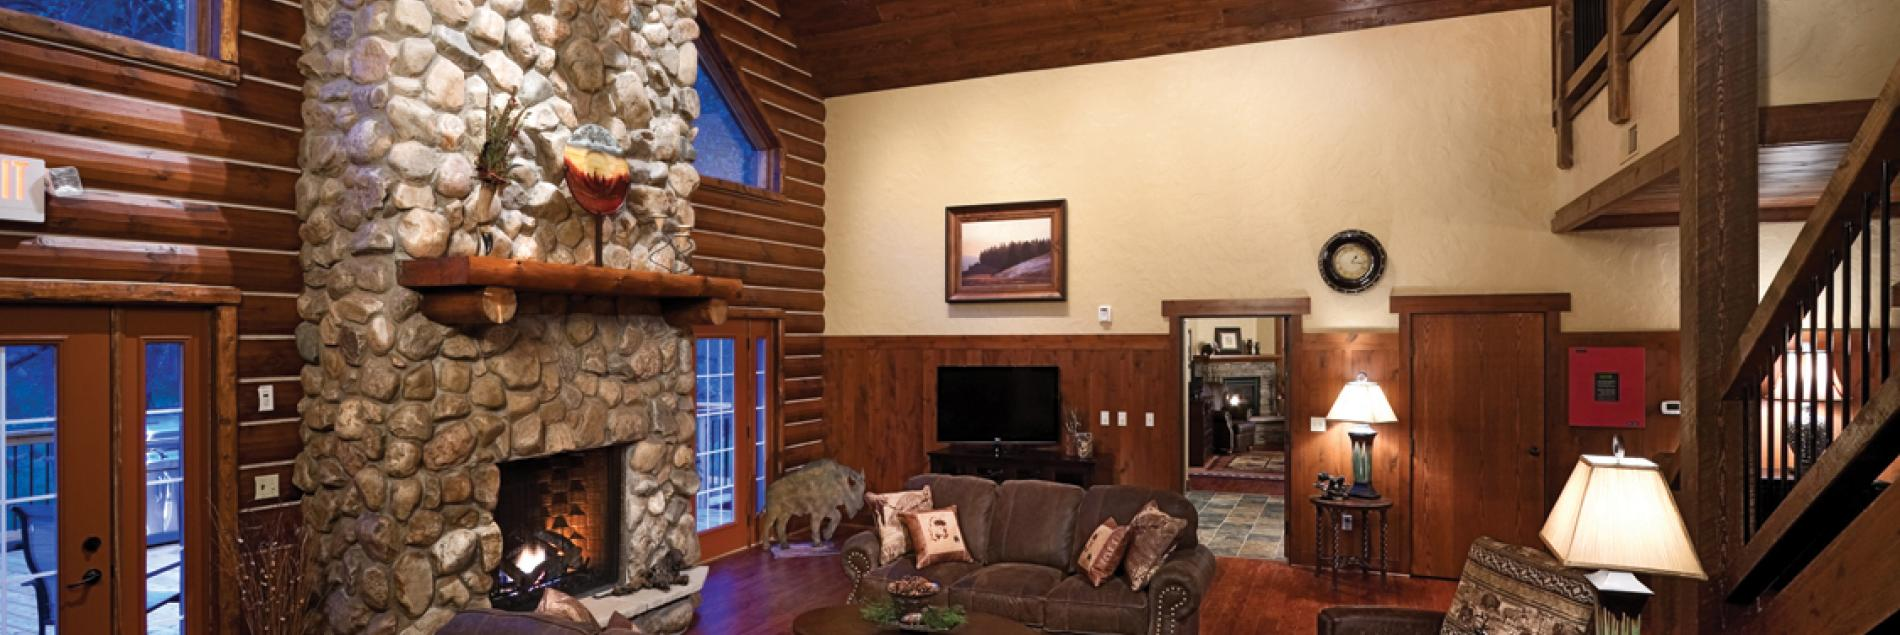 The State Game Lodge at Custer State Park Resort